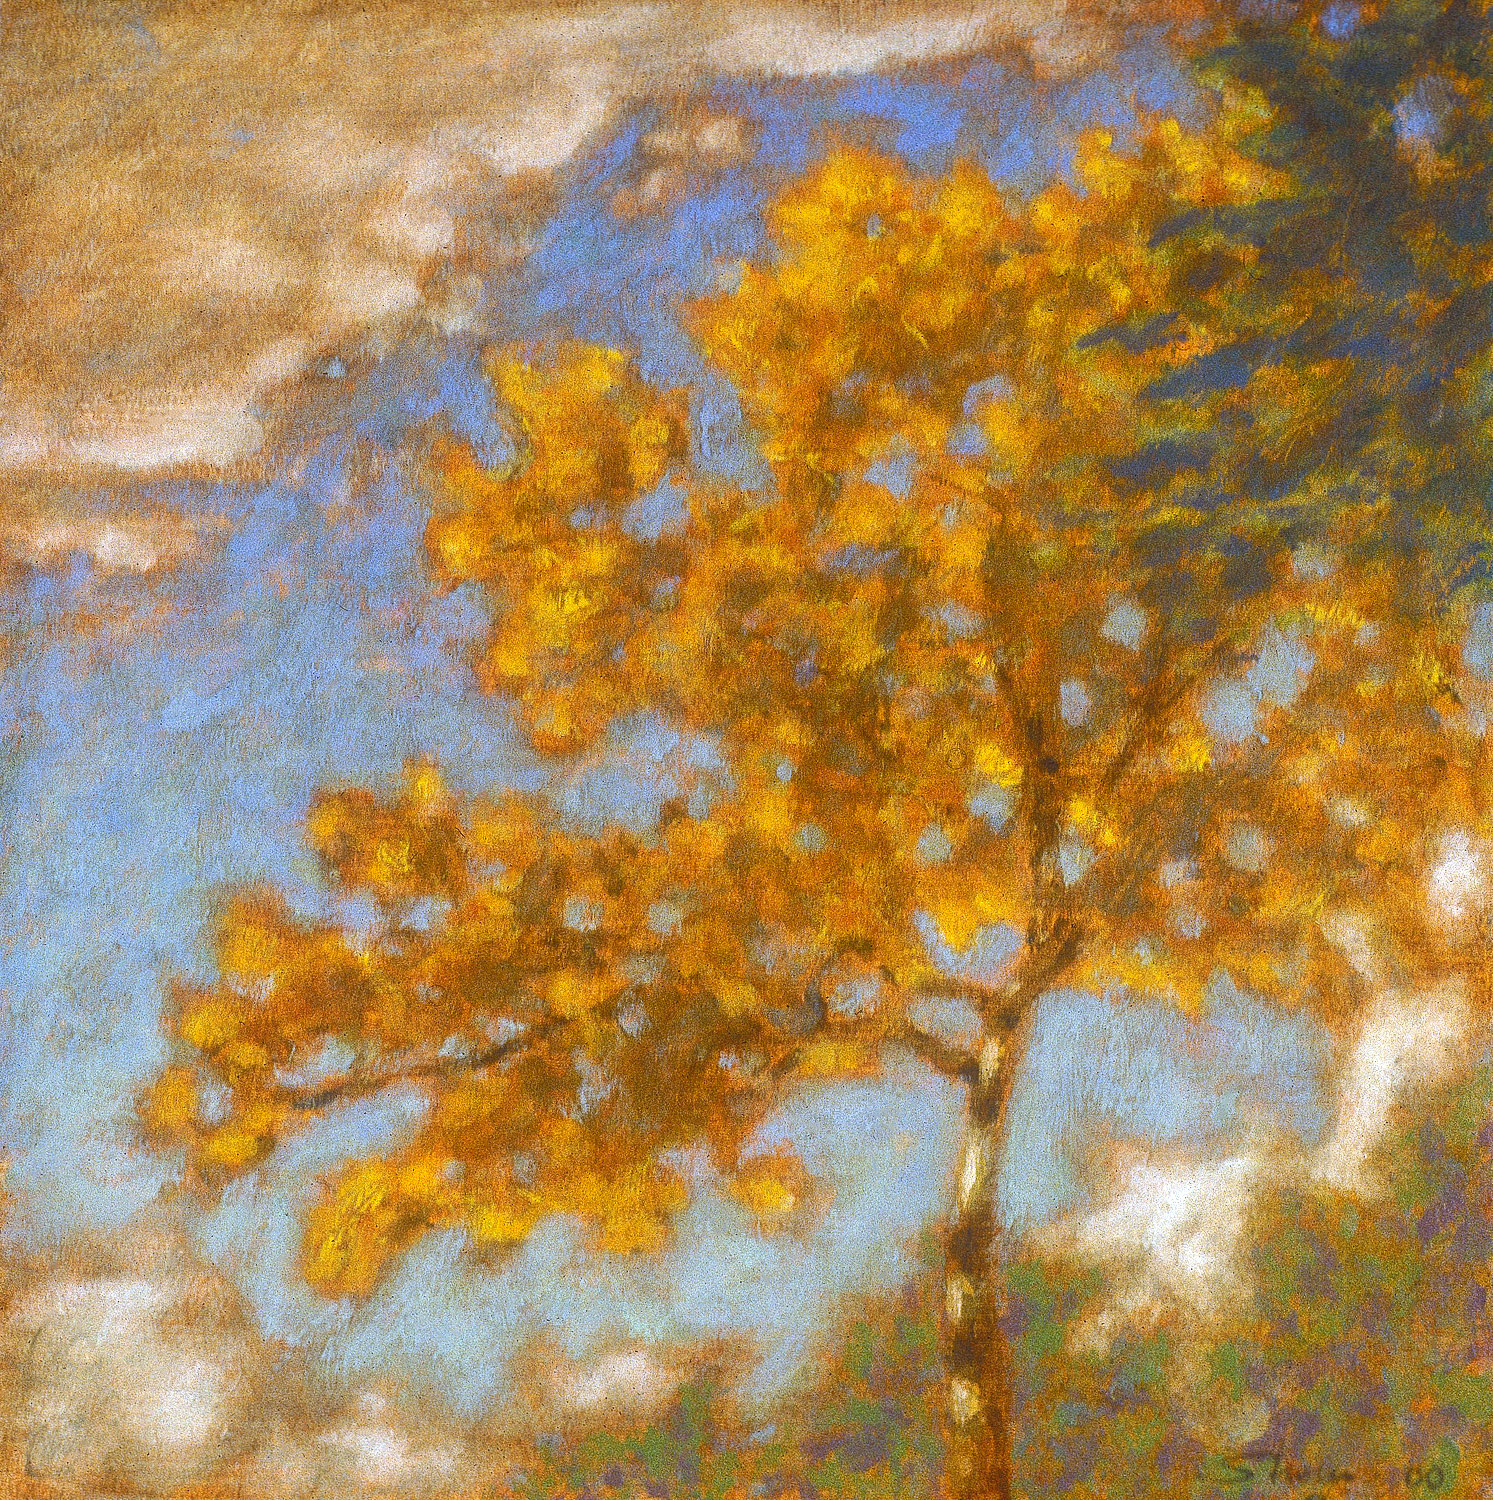 Pine River  | oil on linen | 12 x 12"